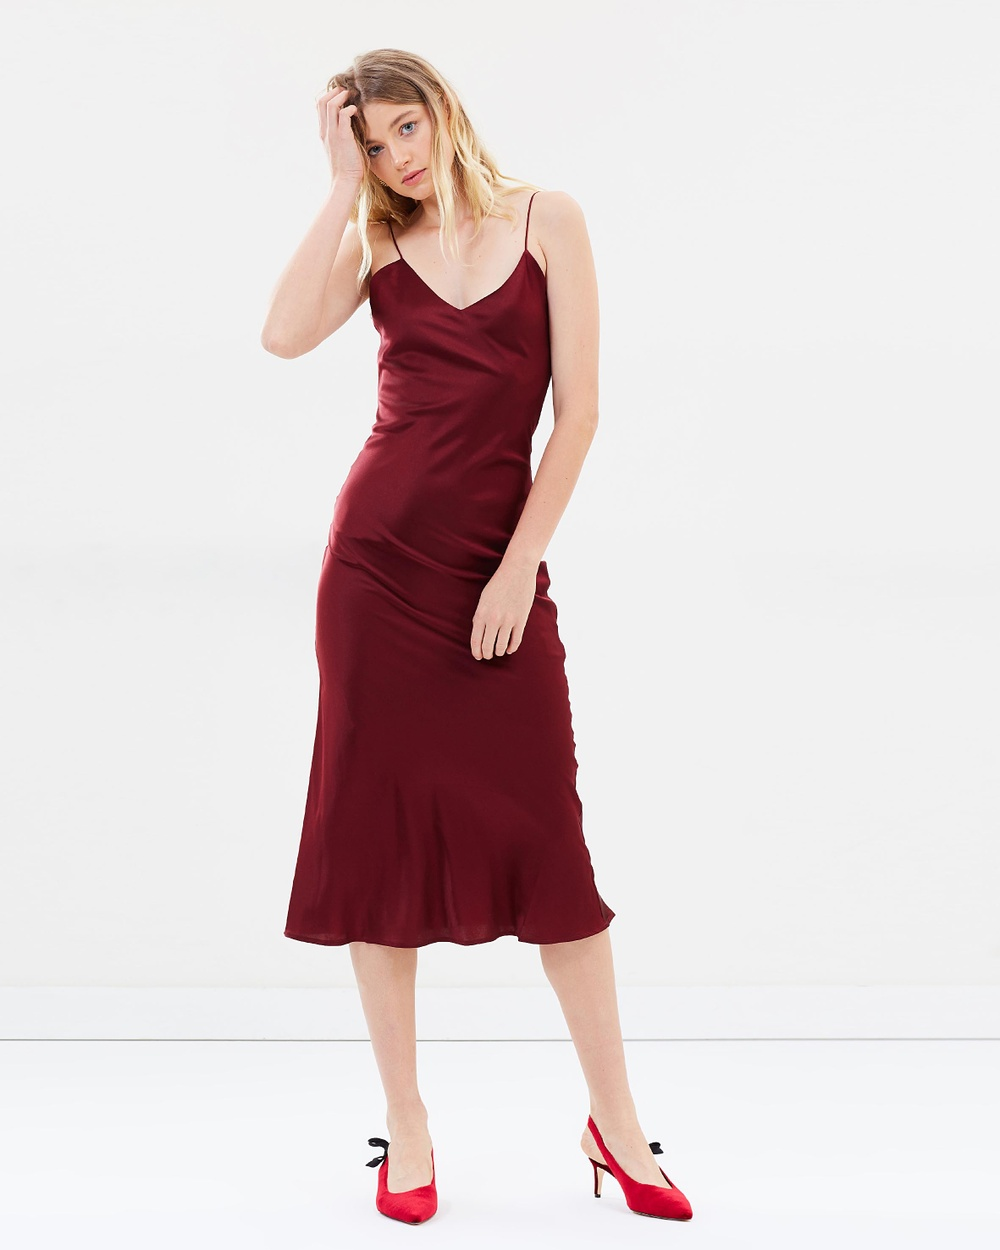 Hansen & Gretel Demi Silk Dress Dresses Wine Demi Silk Dress